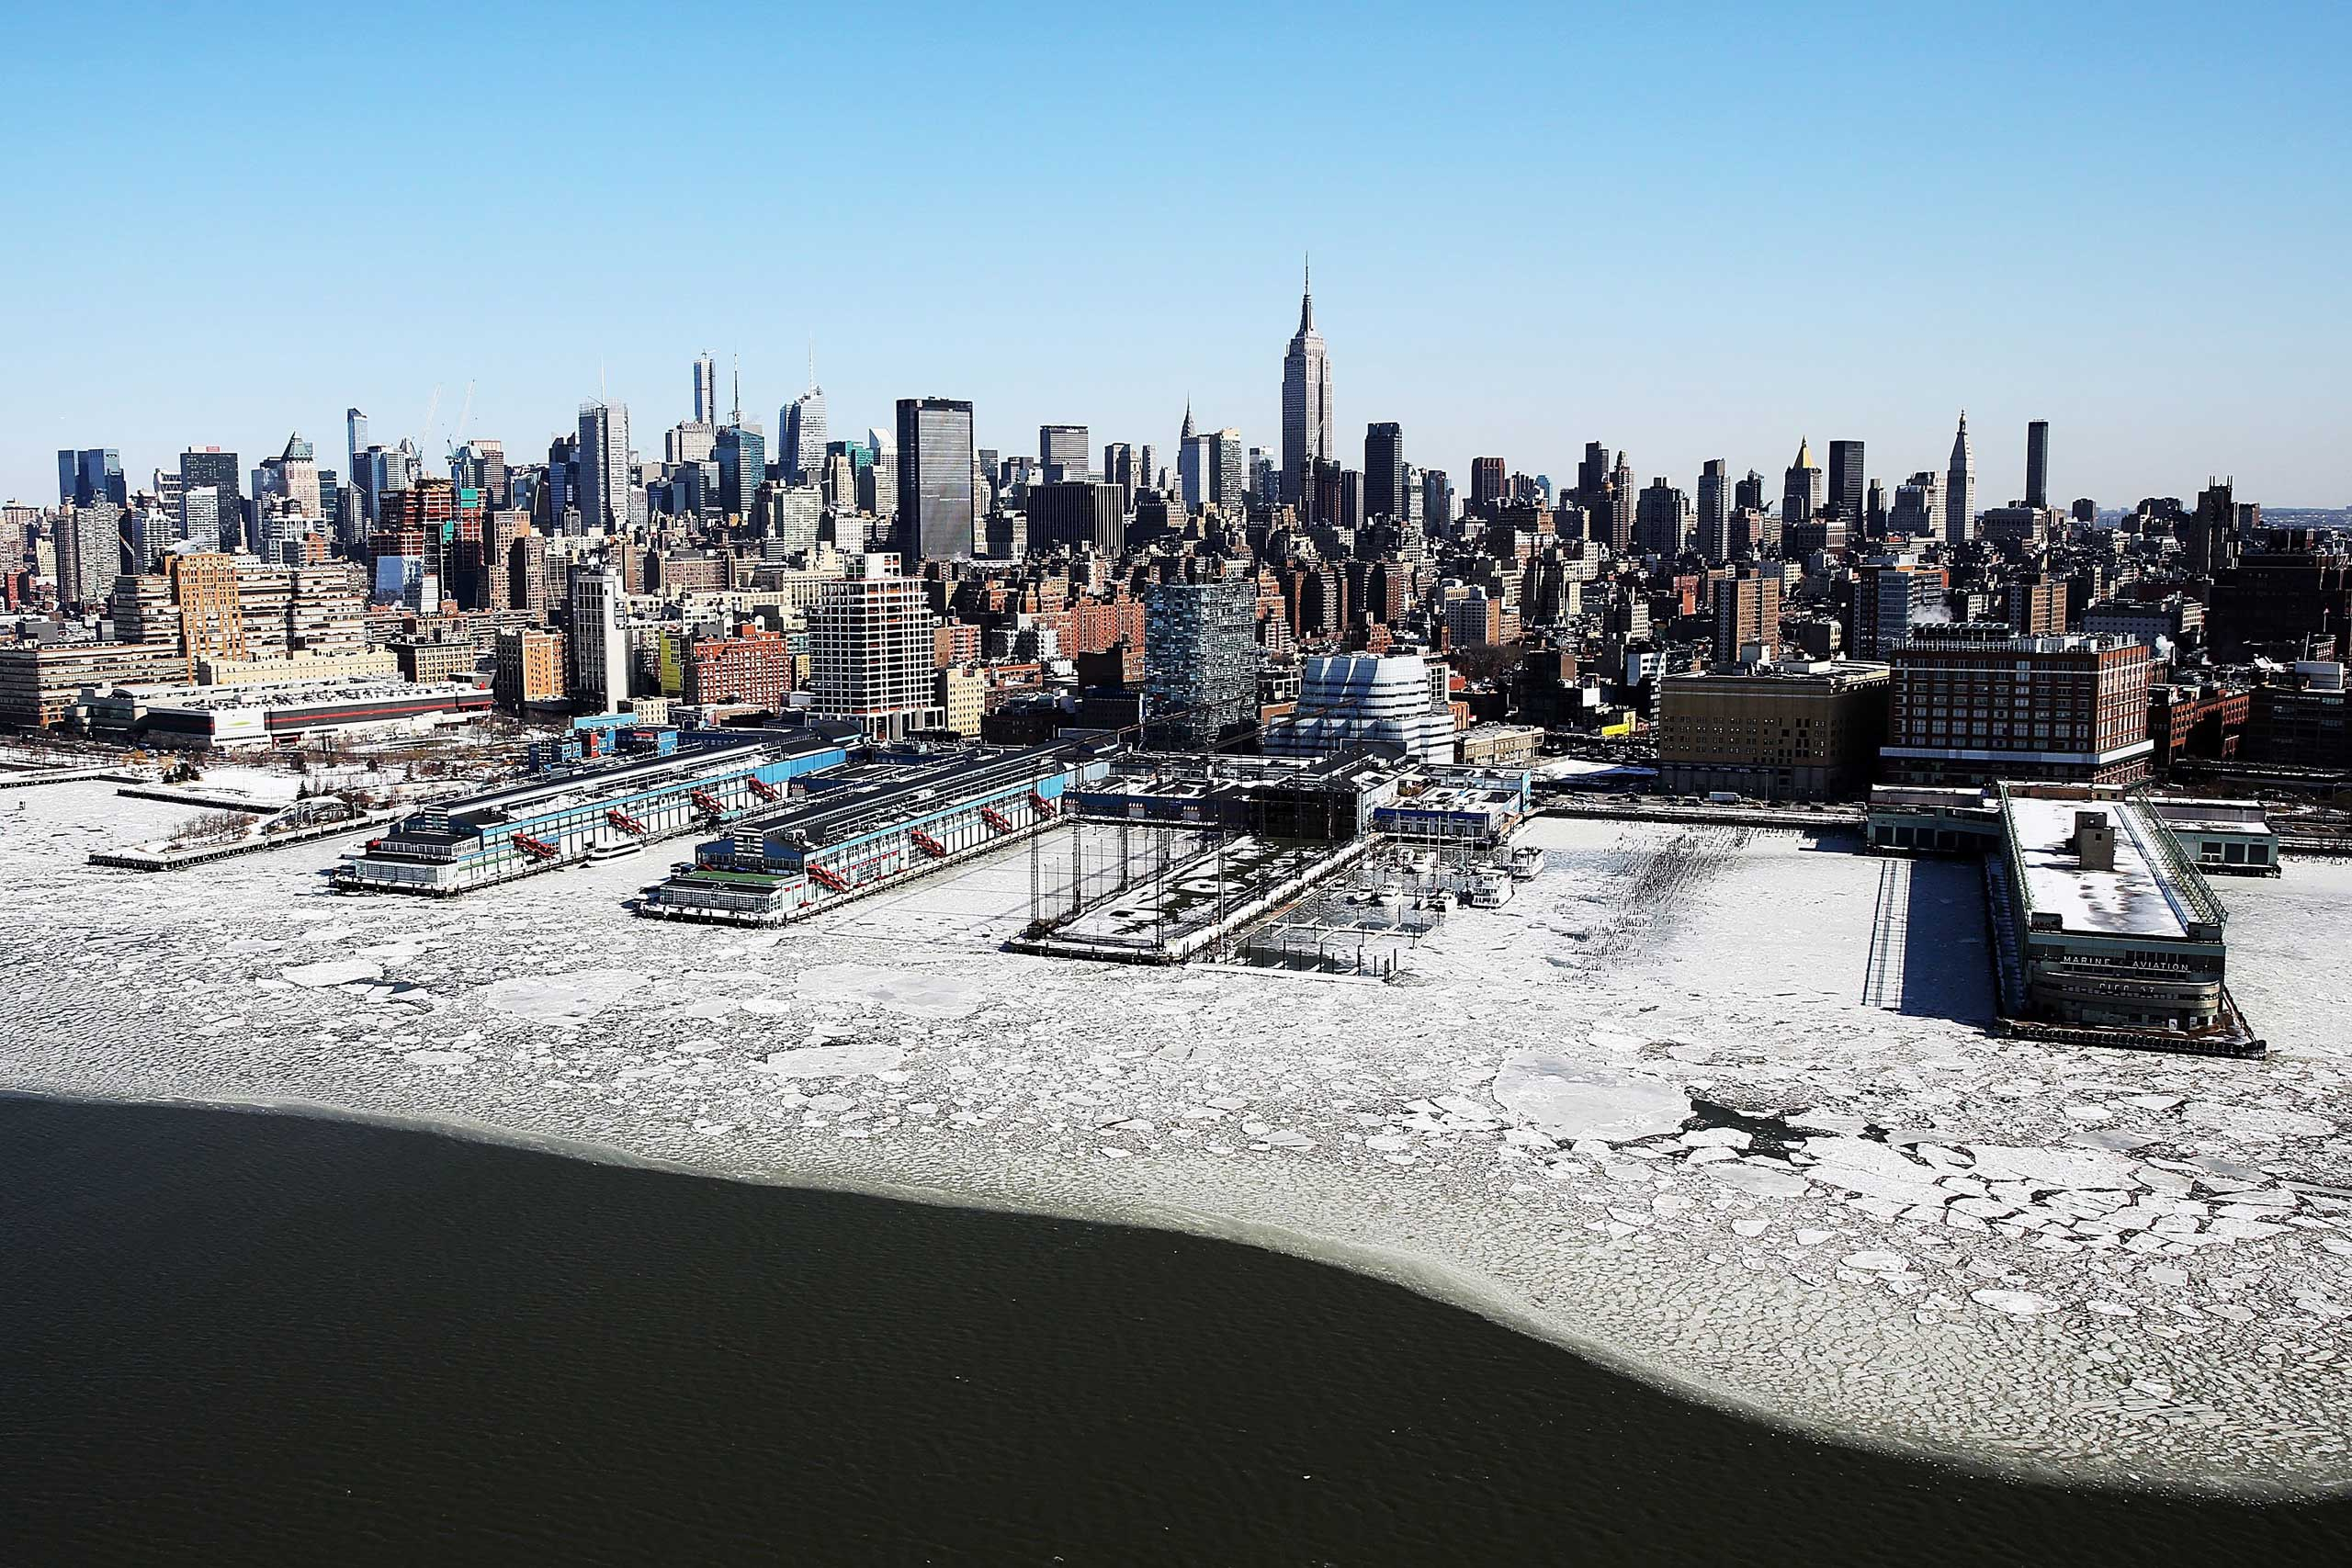 Ice flows along the Hudson River on Feb. 20, 2015 in New York City.